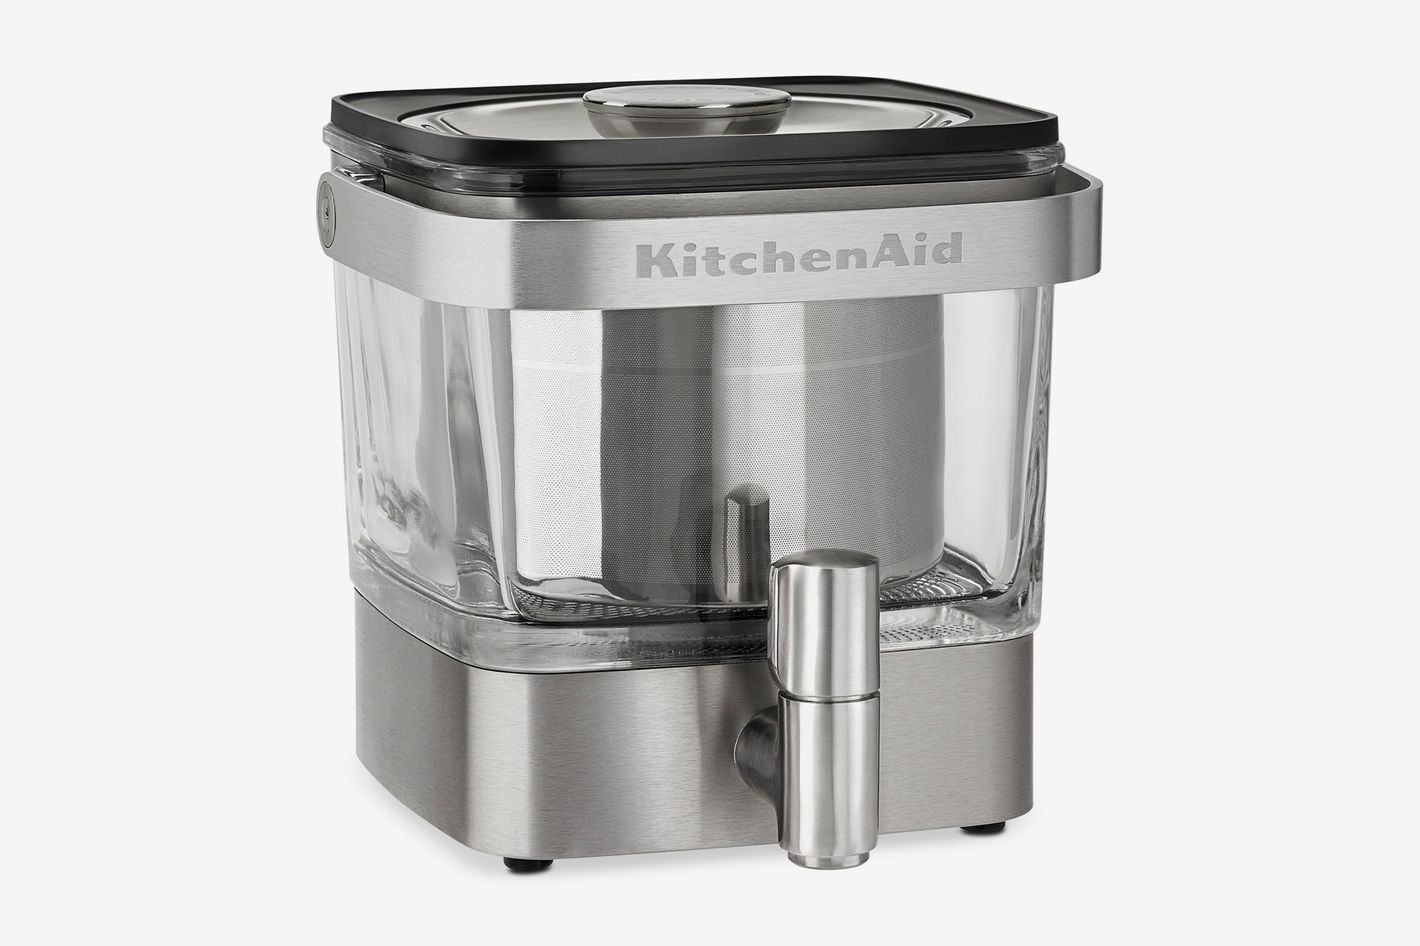 KitchenAid KCM4212SX Cold-Brew Coffee Maker